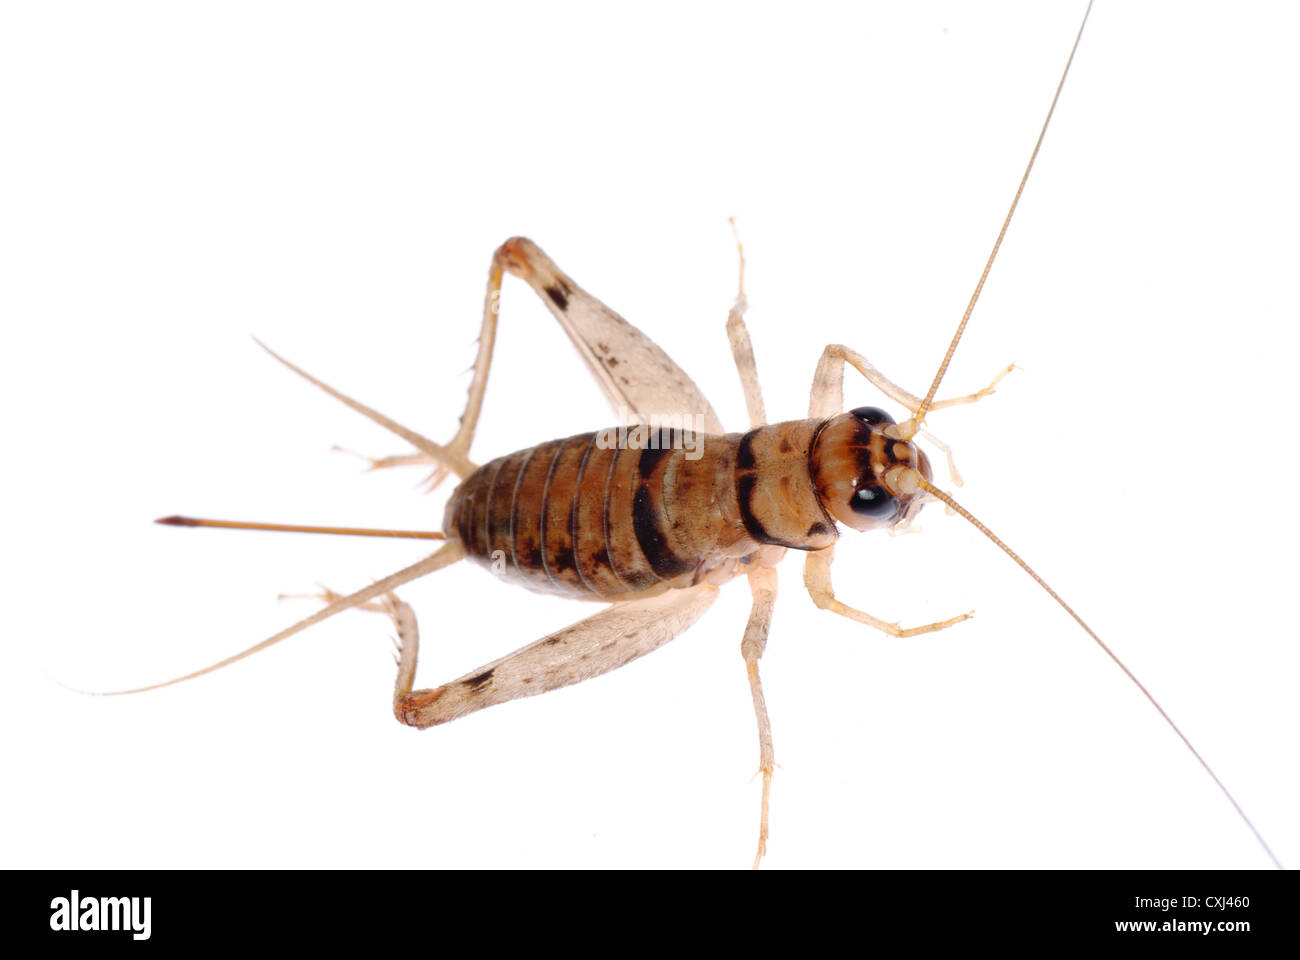 insect cricket - Stock Image